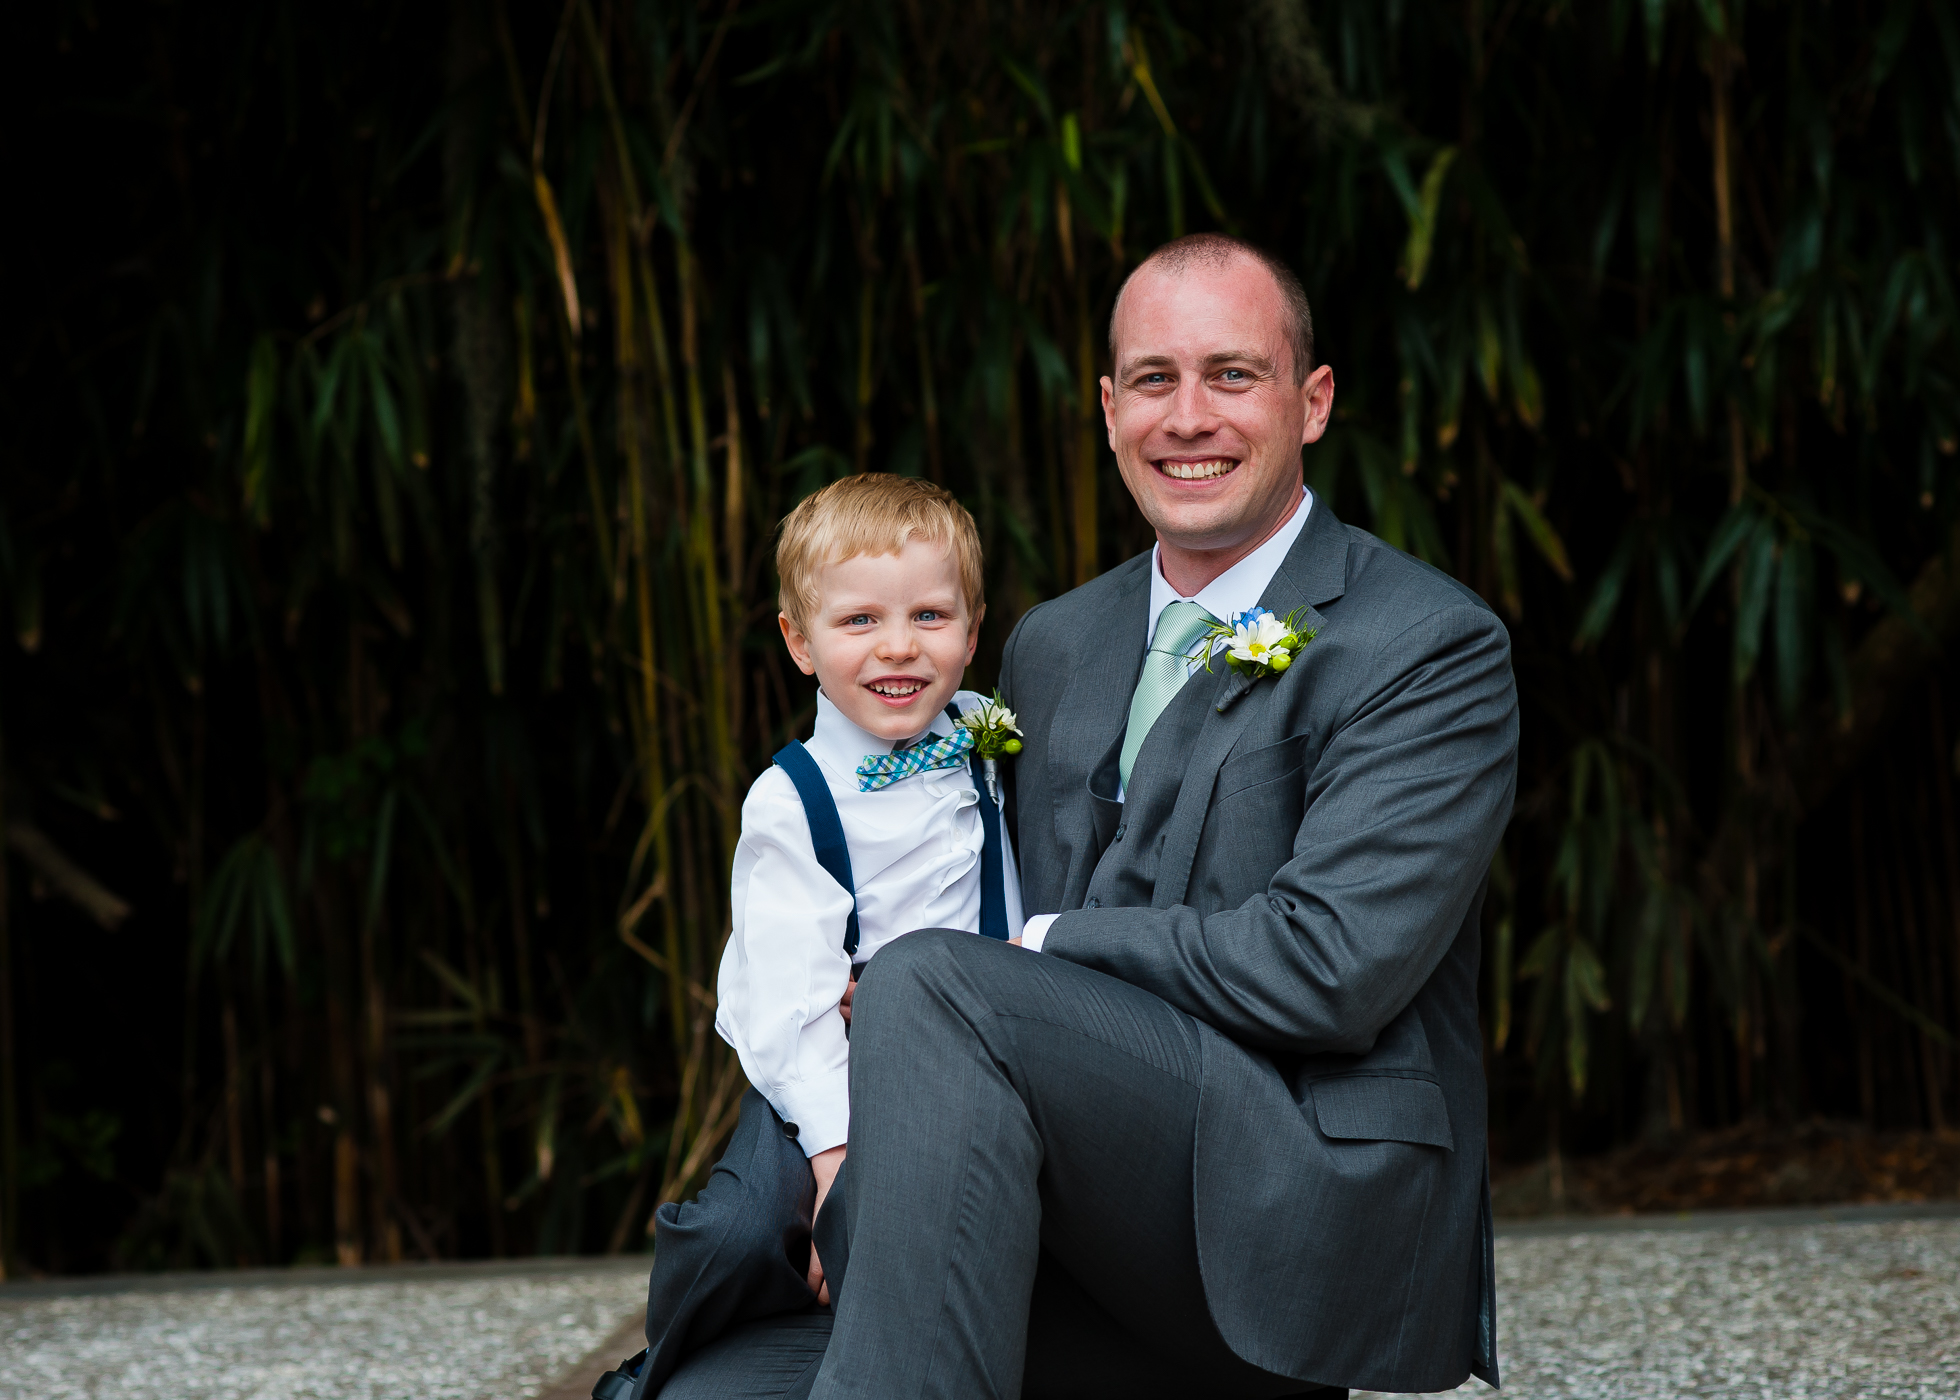 groom and ring bearer wedding day portrait at Magnolia Plantation carriage house